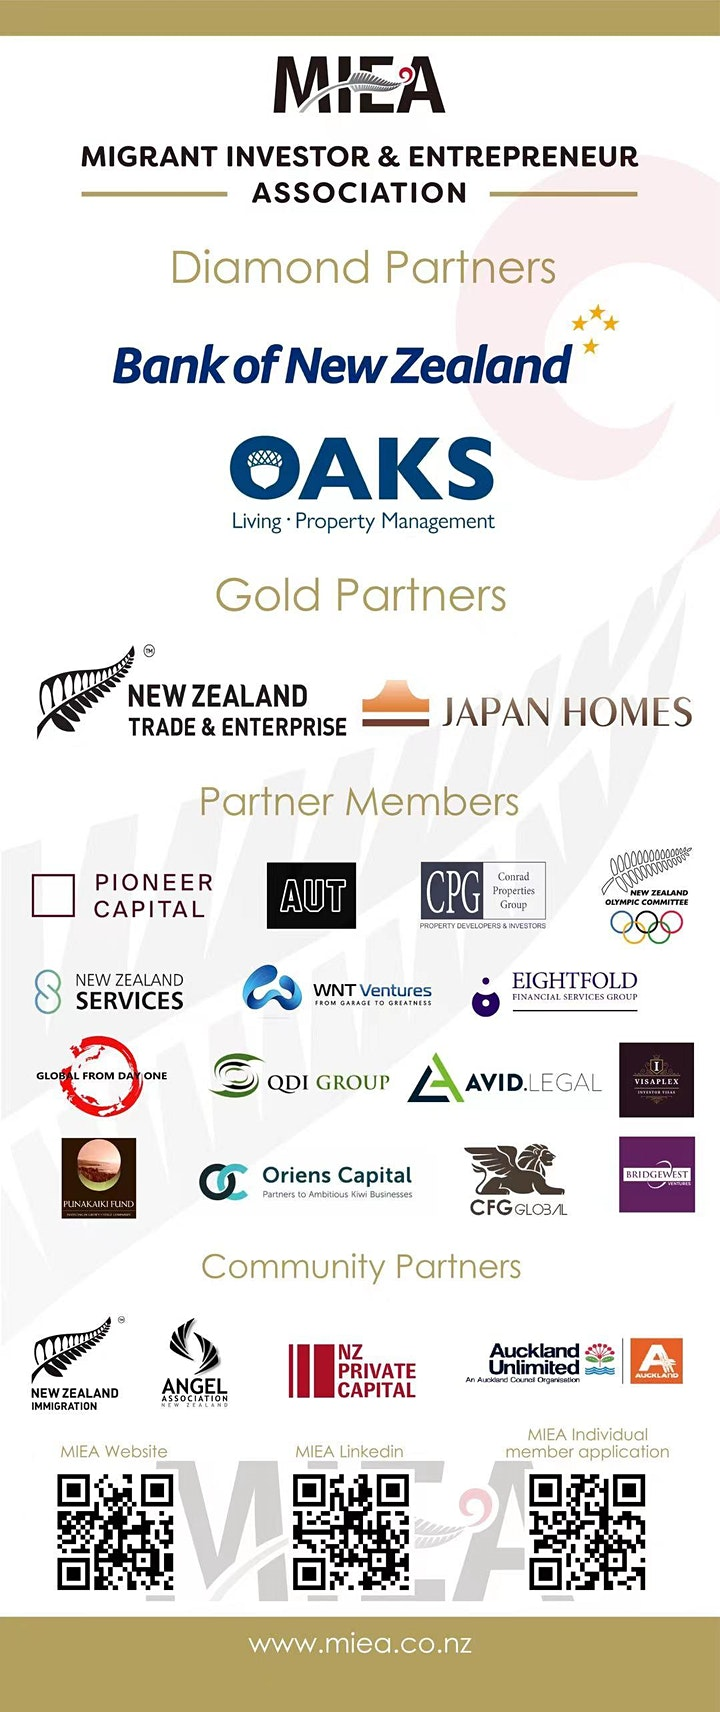 MIEA Philanthropy event hosted by the Bank of New Zealand image